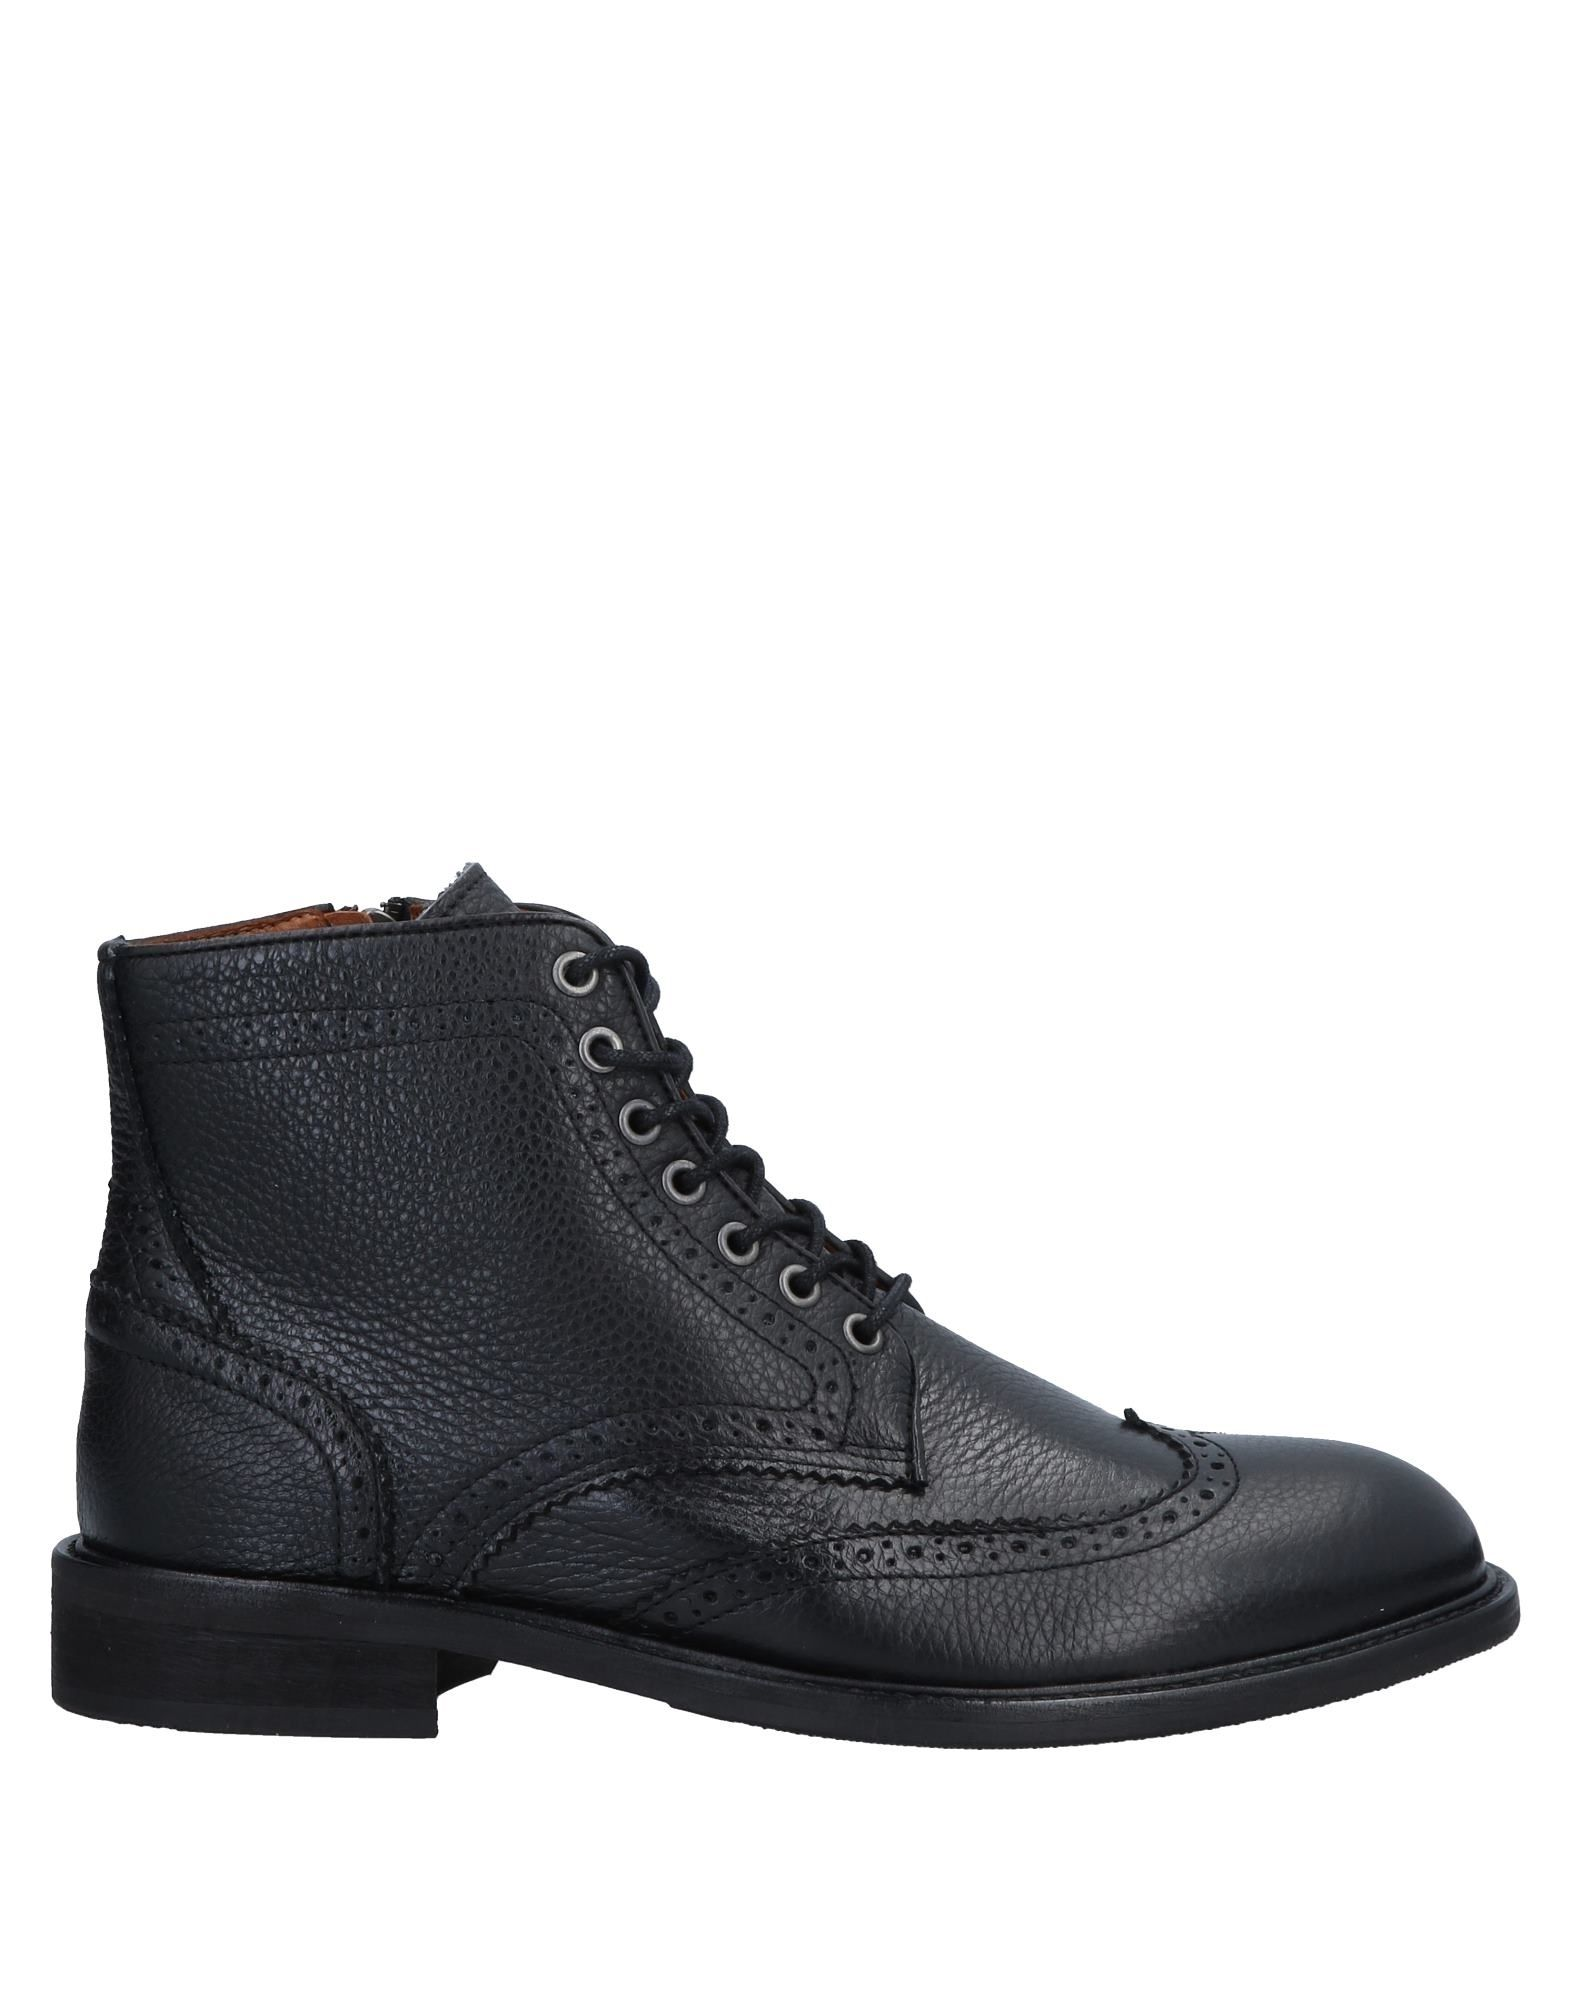 Selected Homme Boots - Men Selected Selected Selected Homme Boots online on  United Kingdom - 11570821QC d3b040